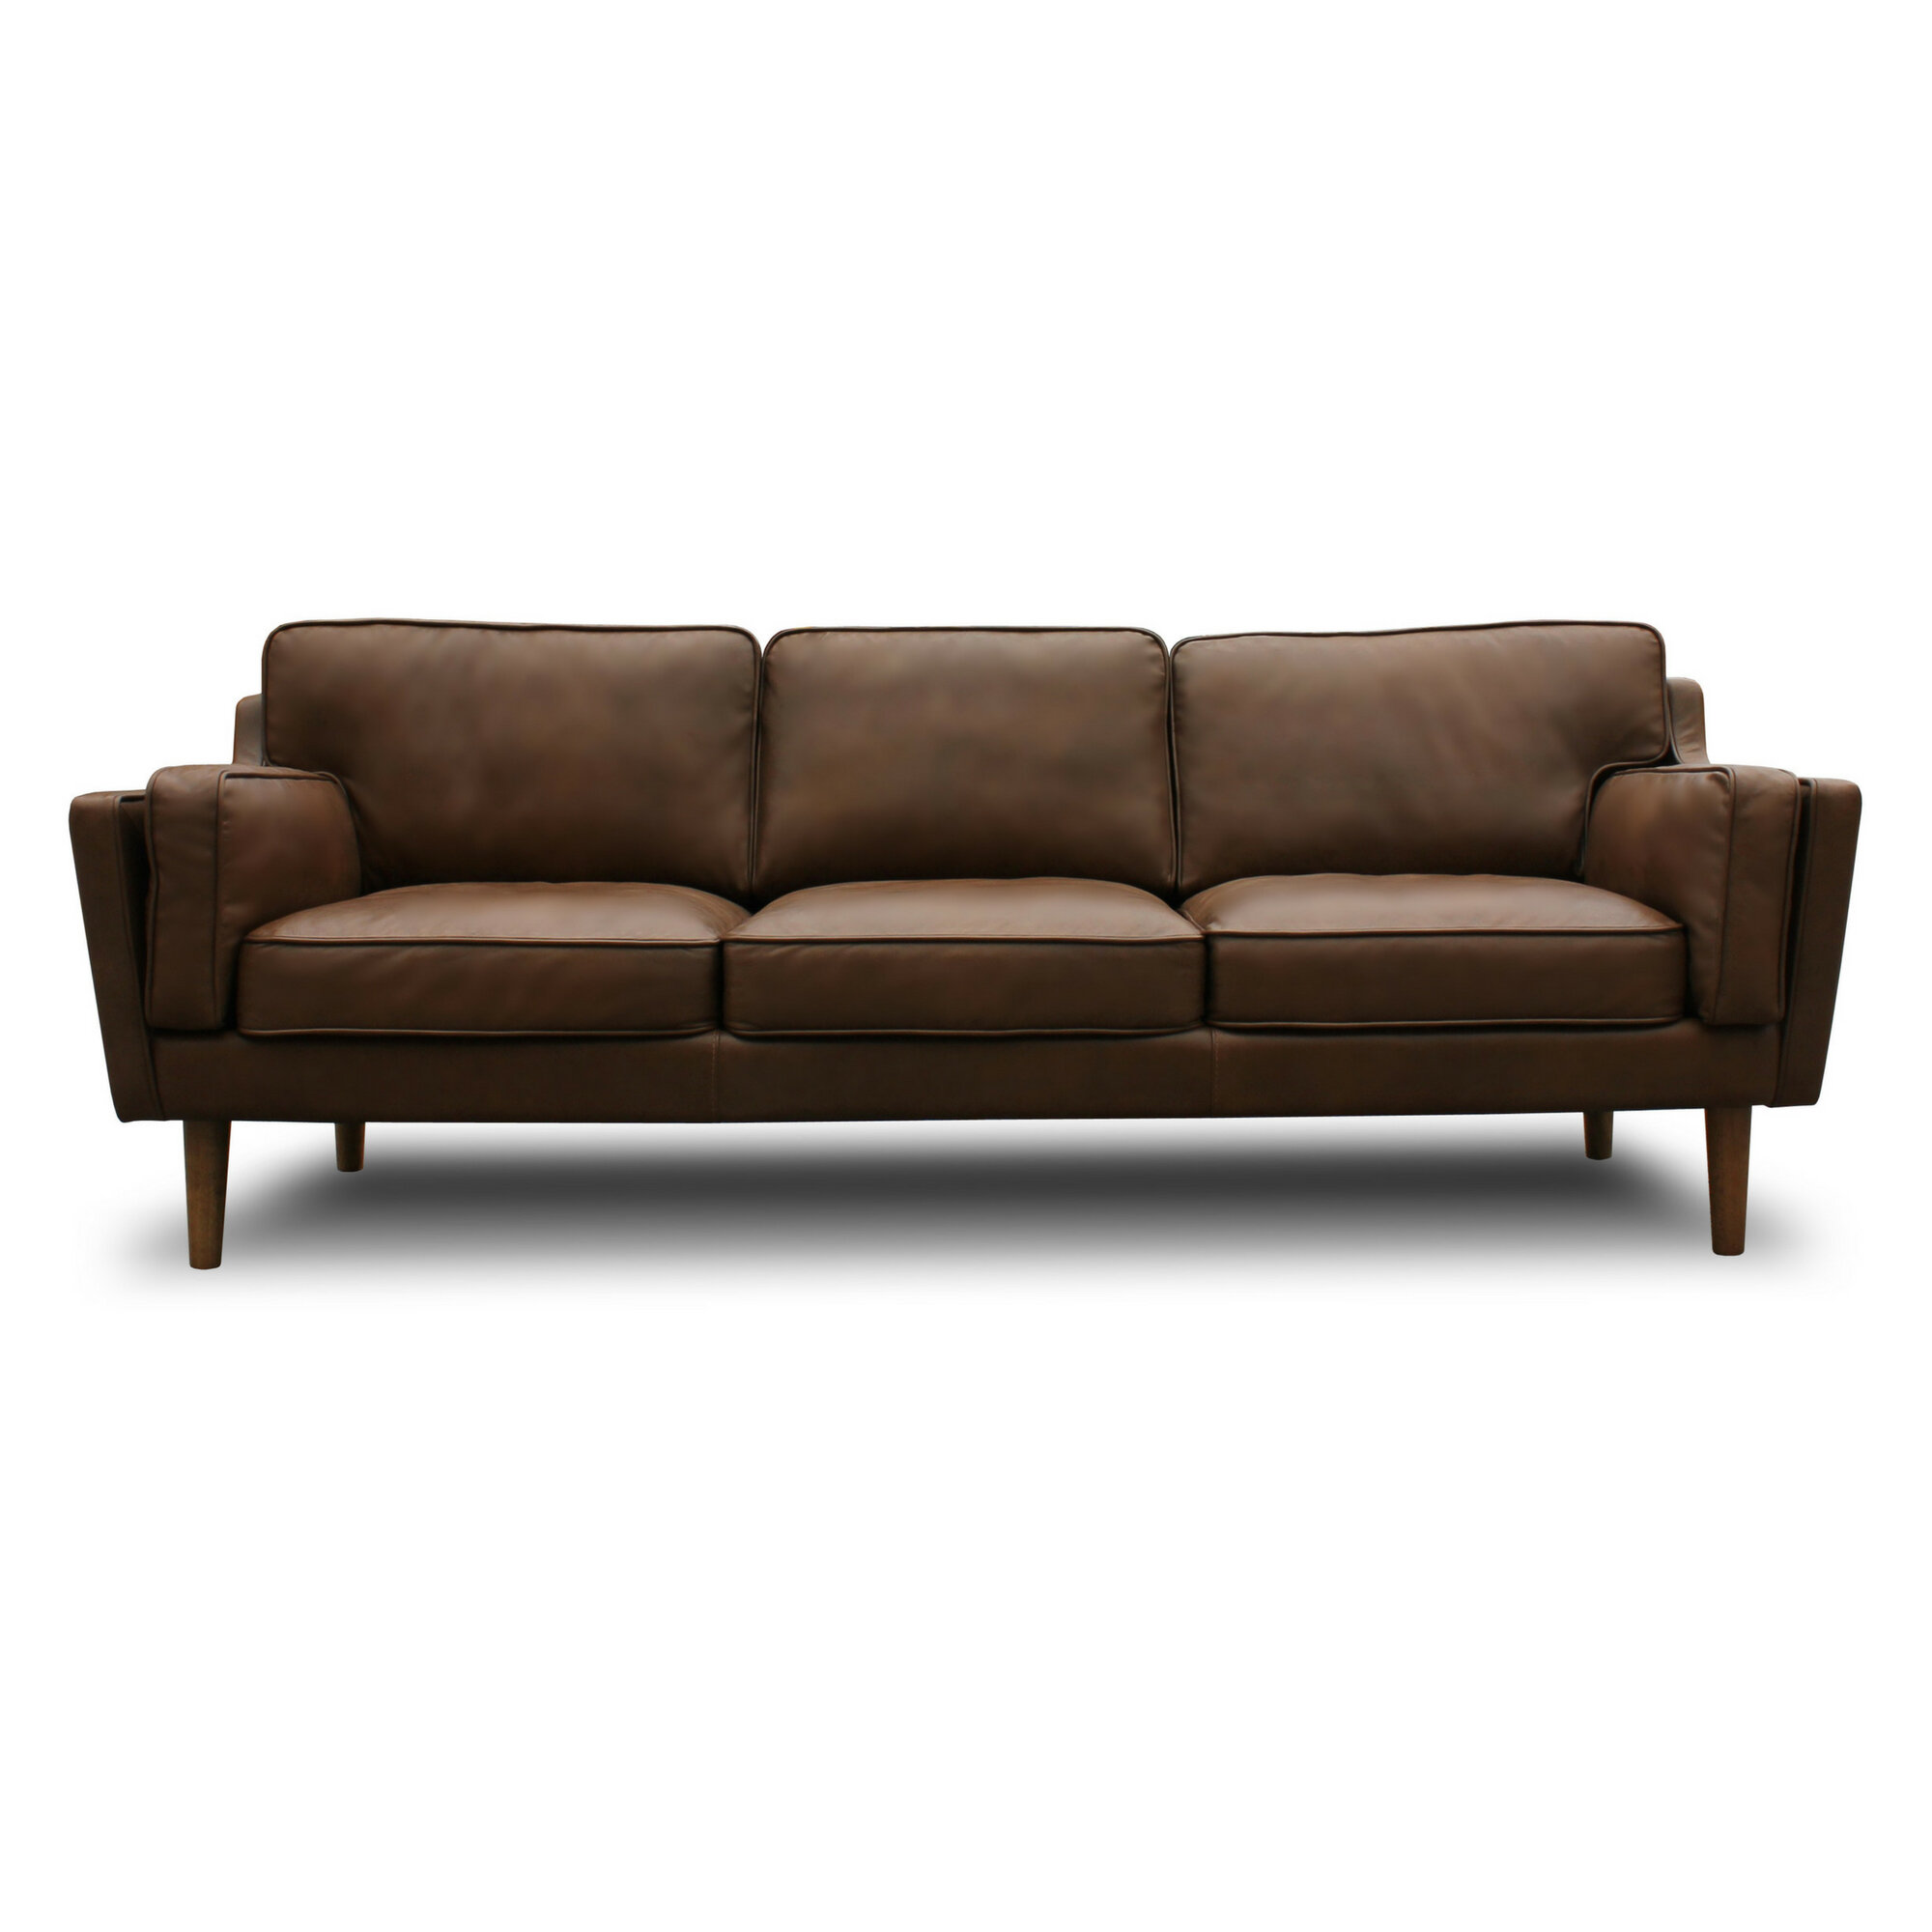 Union rustic kaufman mid century modern leather sofa reviews wayfair